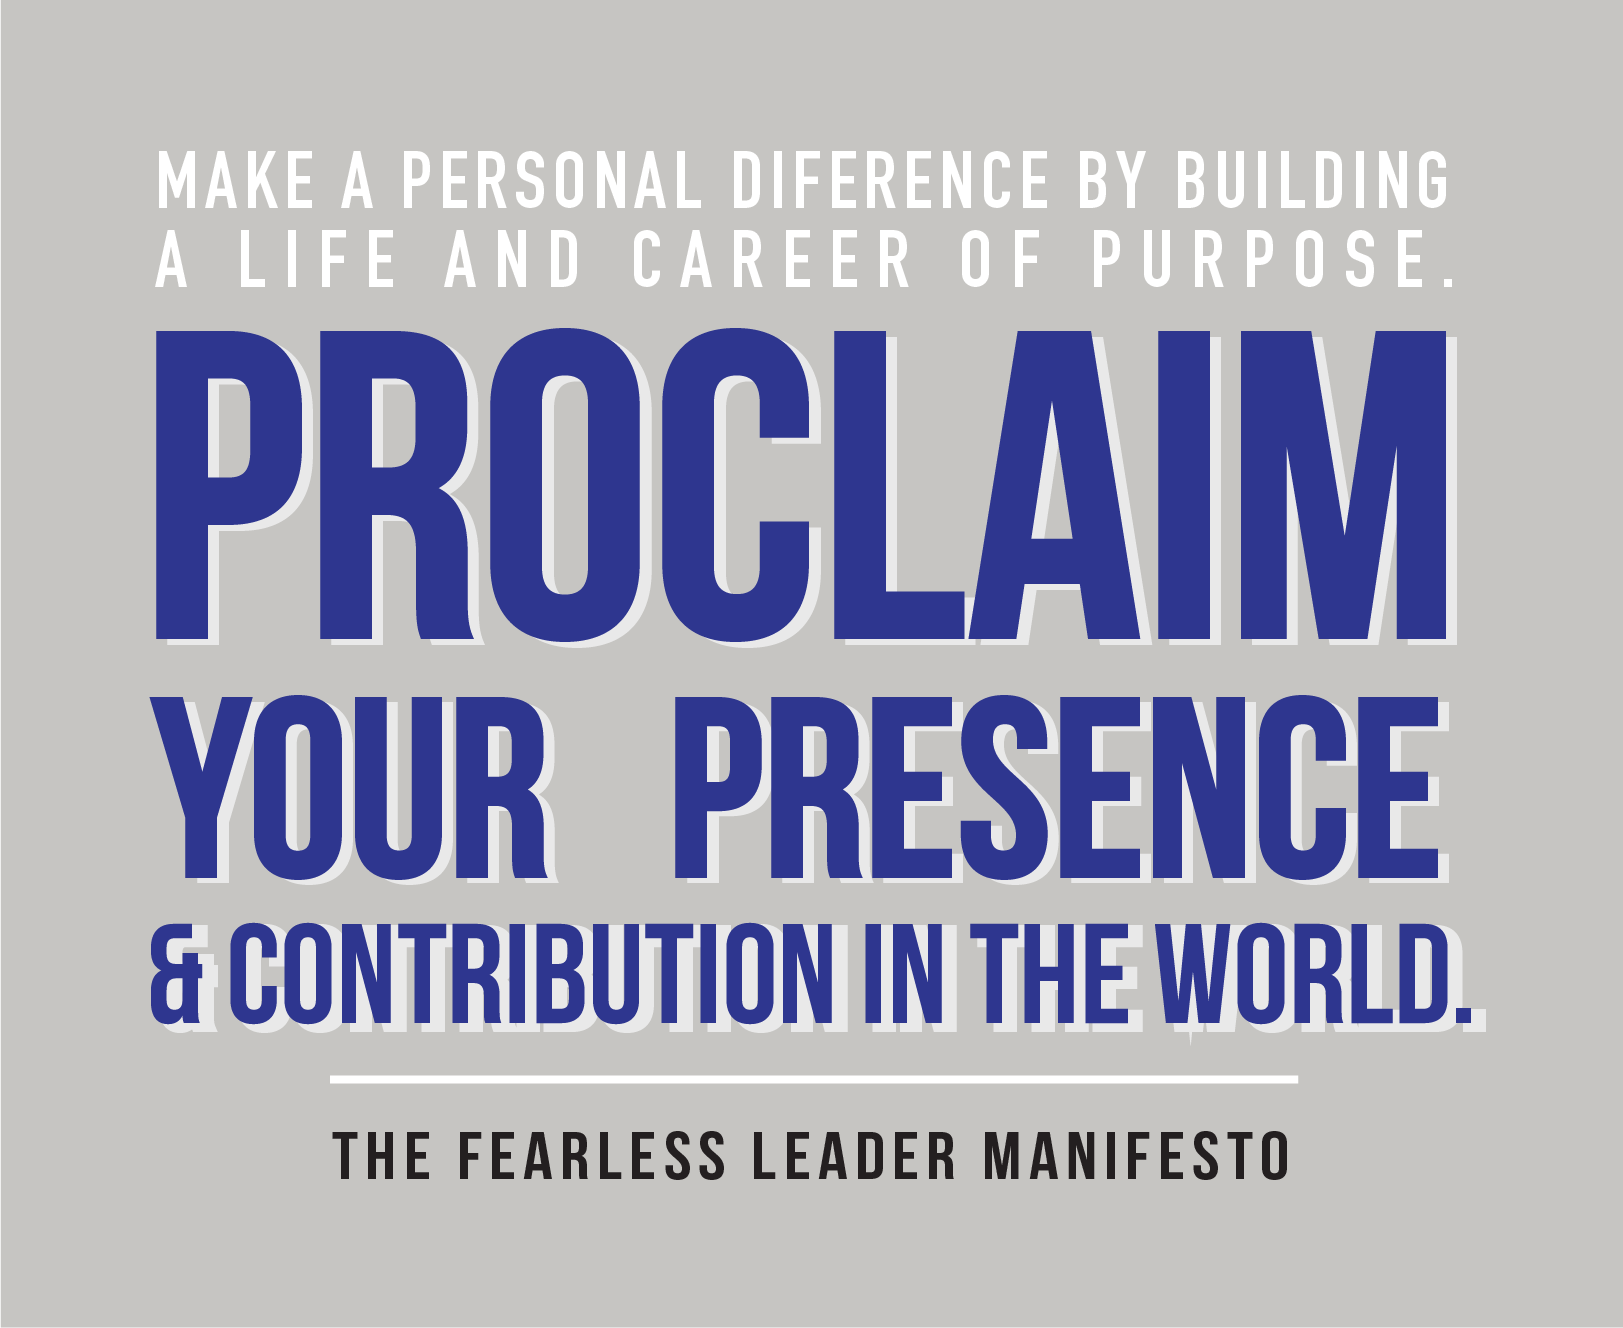 Fearless Leader Manifesto: A New Breed of Leaders | Center for Nature & Leadership